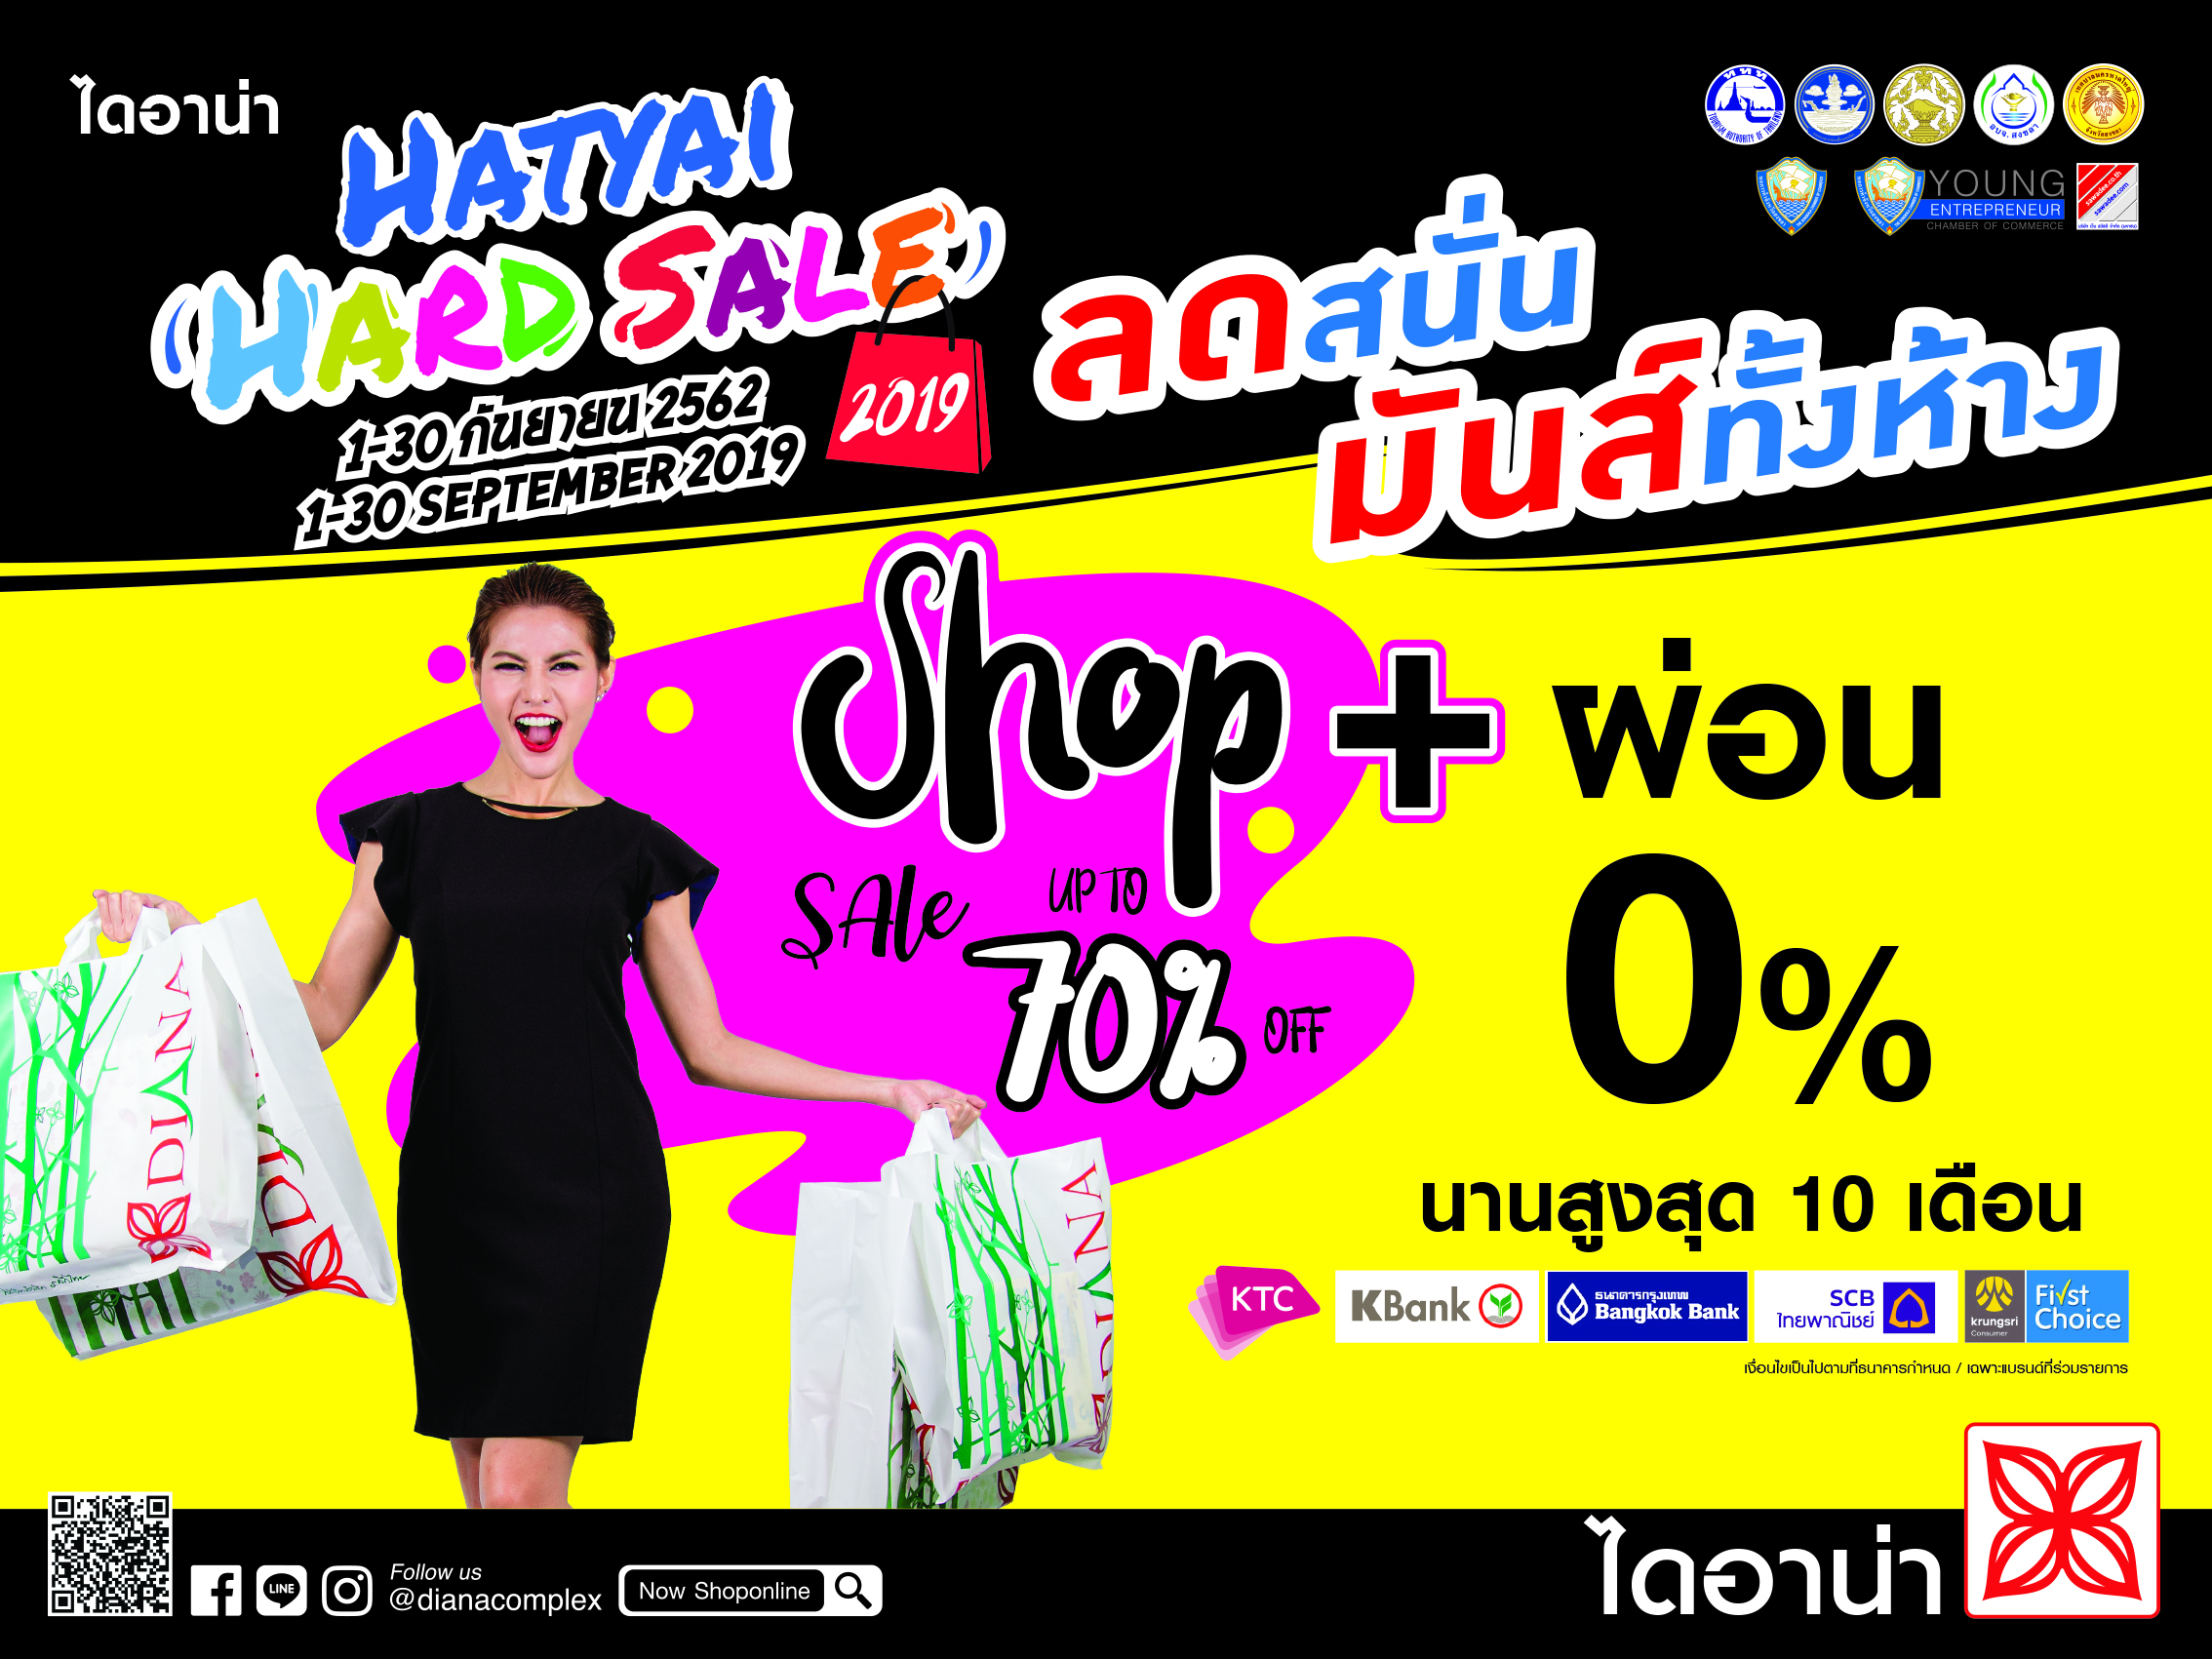 Diana Hatyai Hard Sale 2019